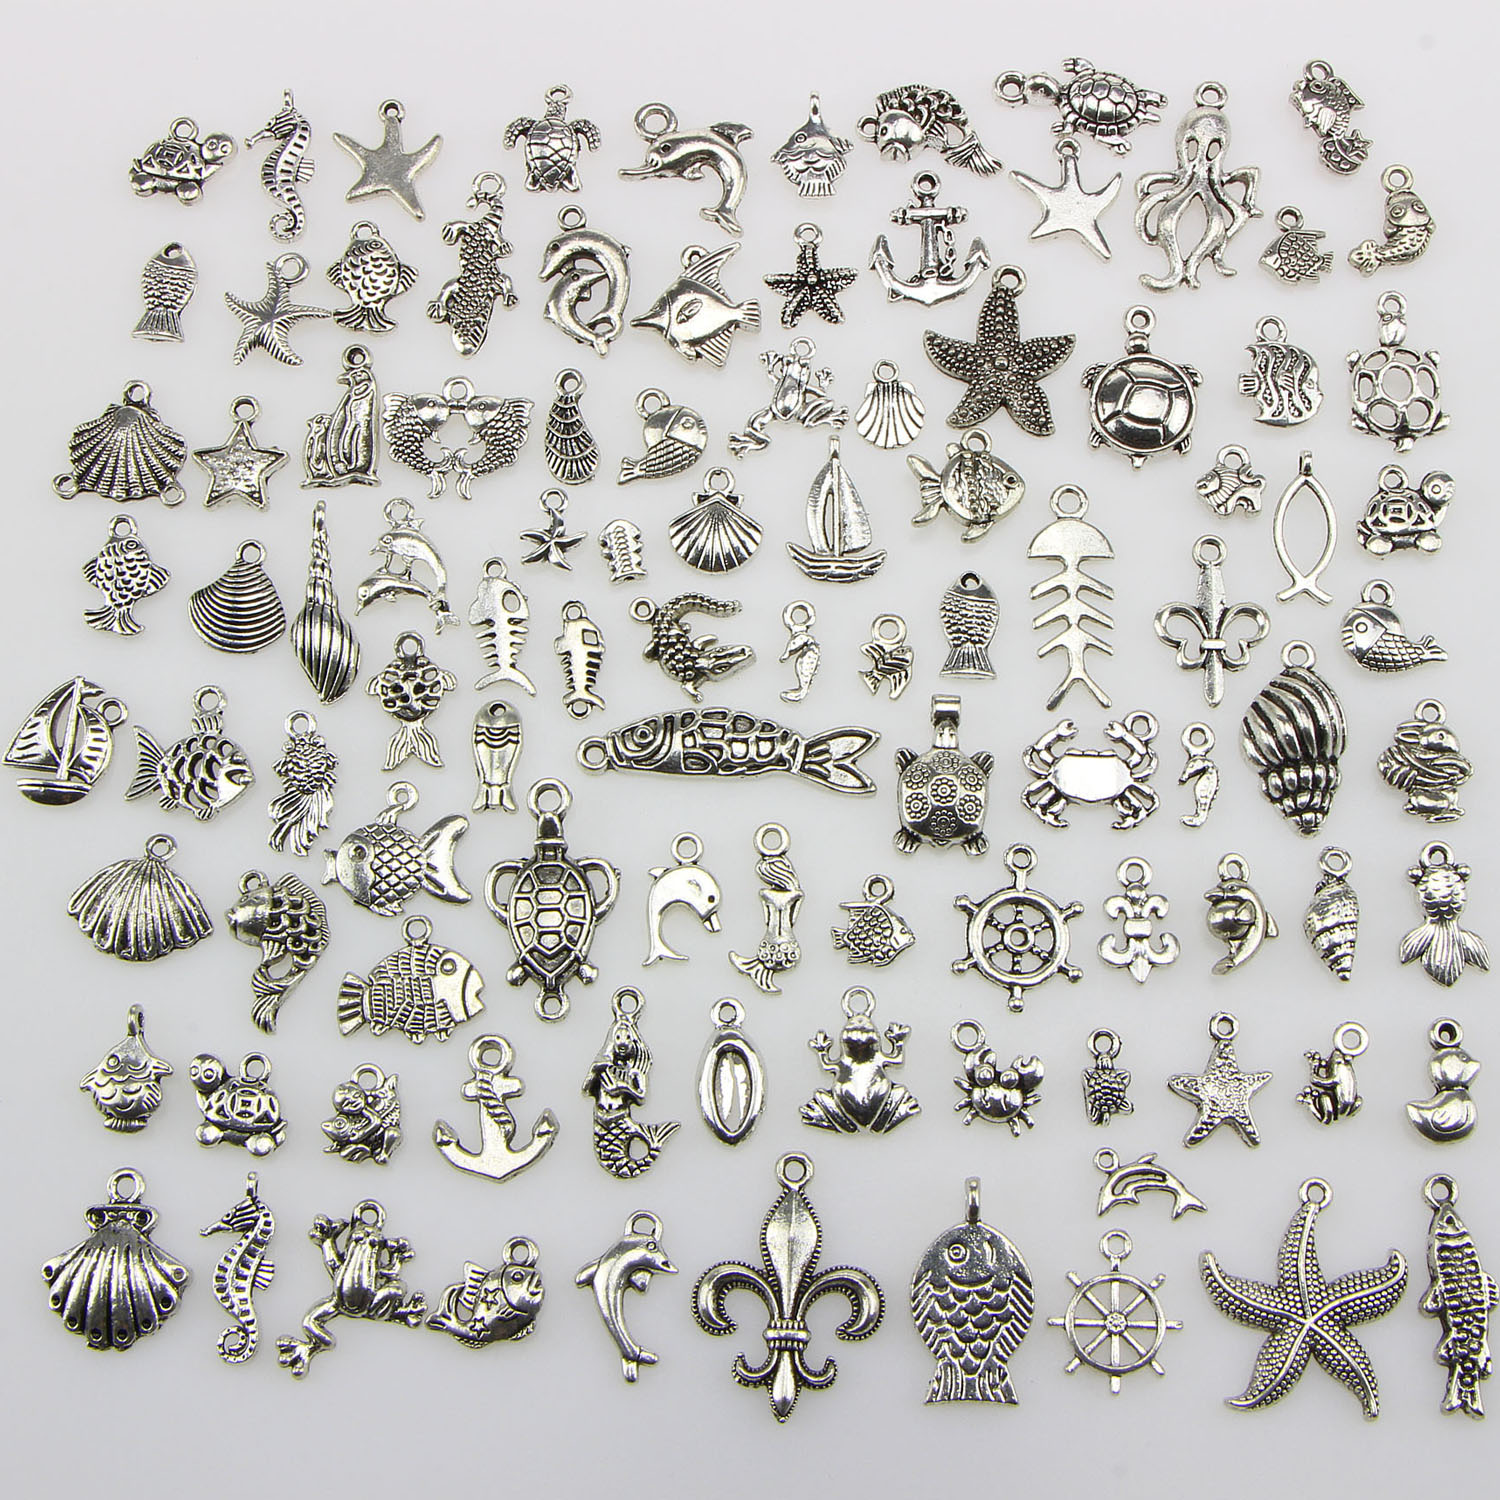 100Pcs Cute Fashion Decorative Alloy Marine Life Shape Mixed Pendant Charms DIY Toys Gifts Necklace Bracelet Making Crafting